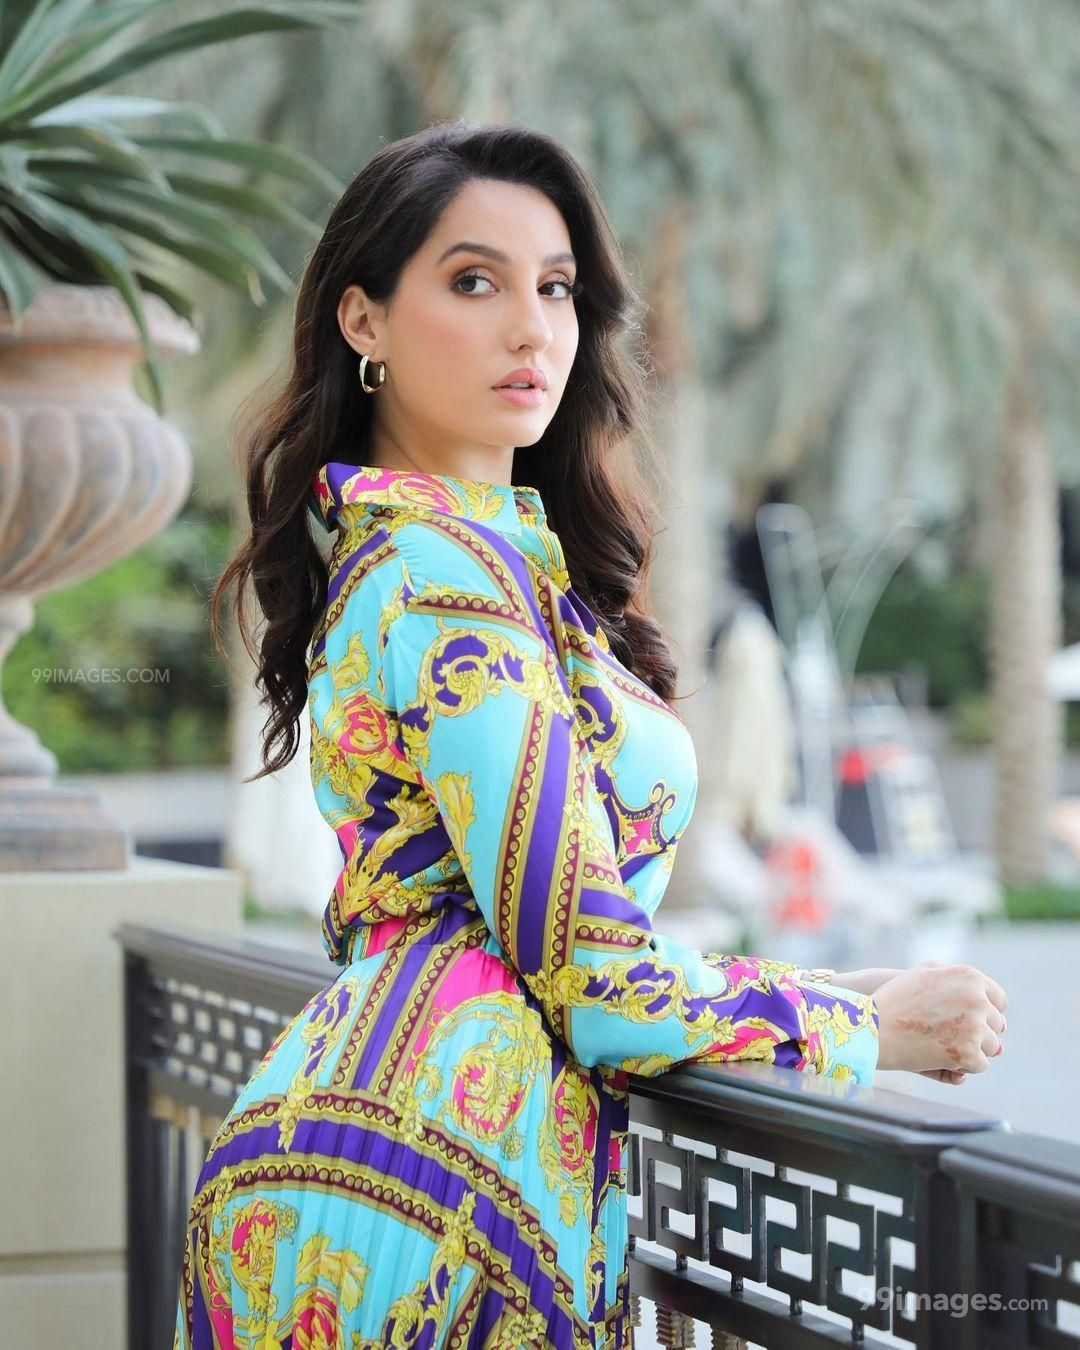 Nora Fatehi HD Wallpapers (Desktop Background / Android / iPhone) (1080p, 4k)